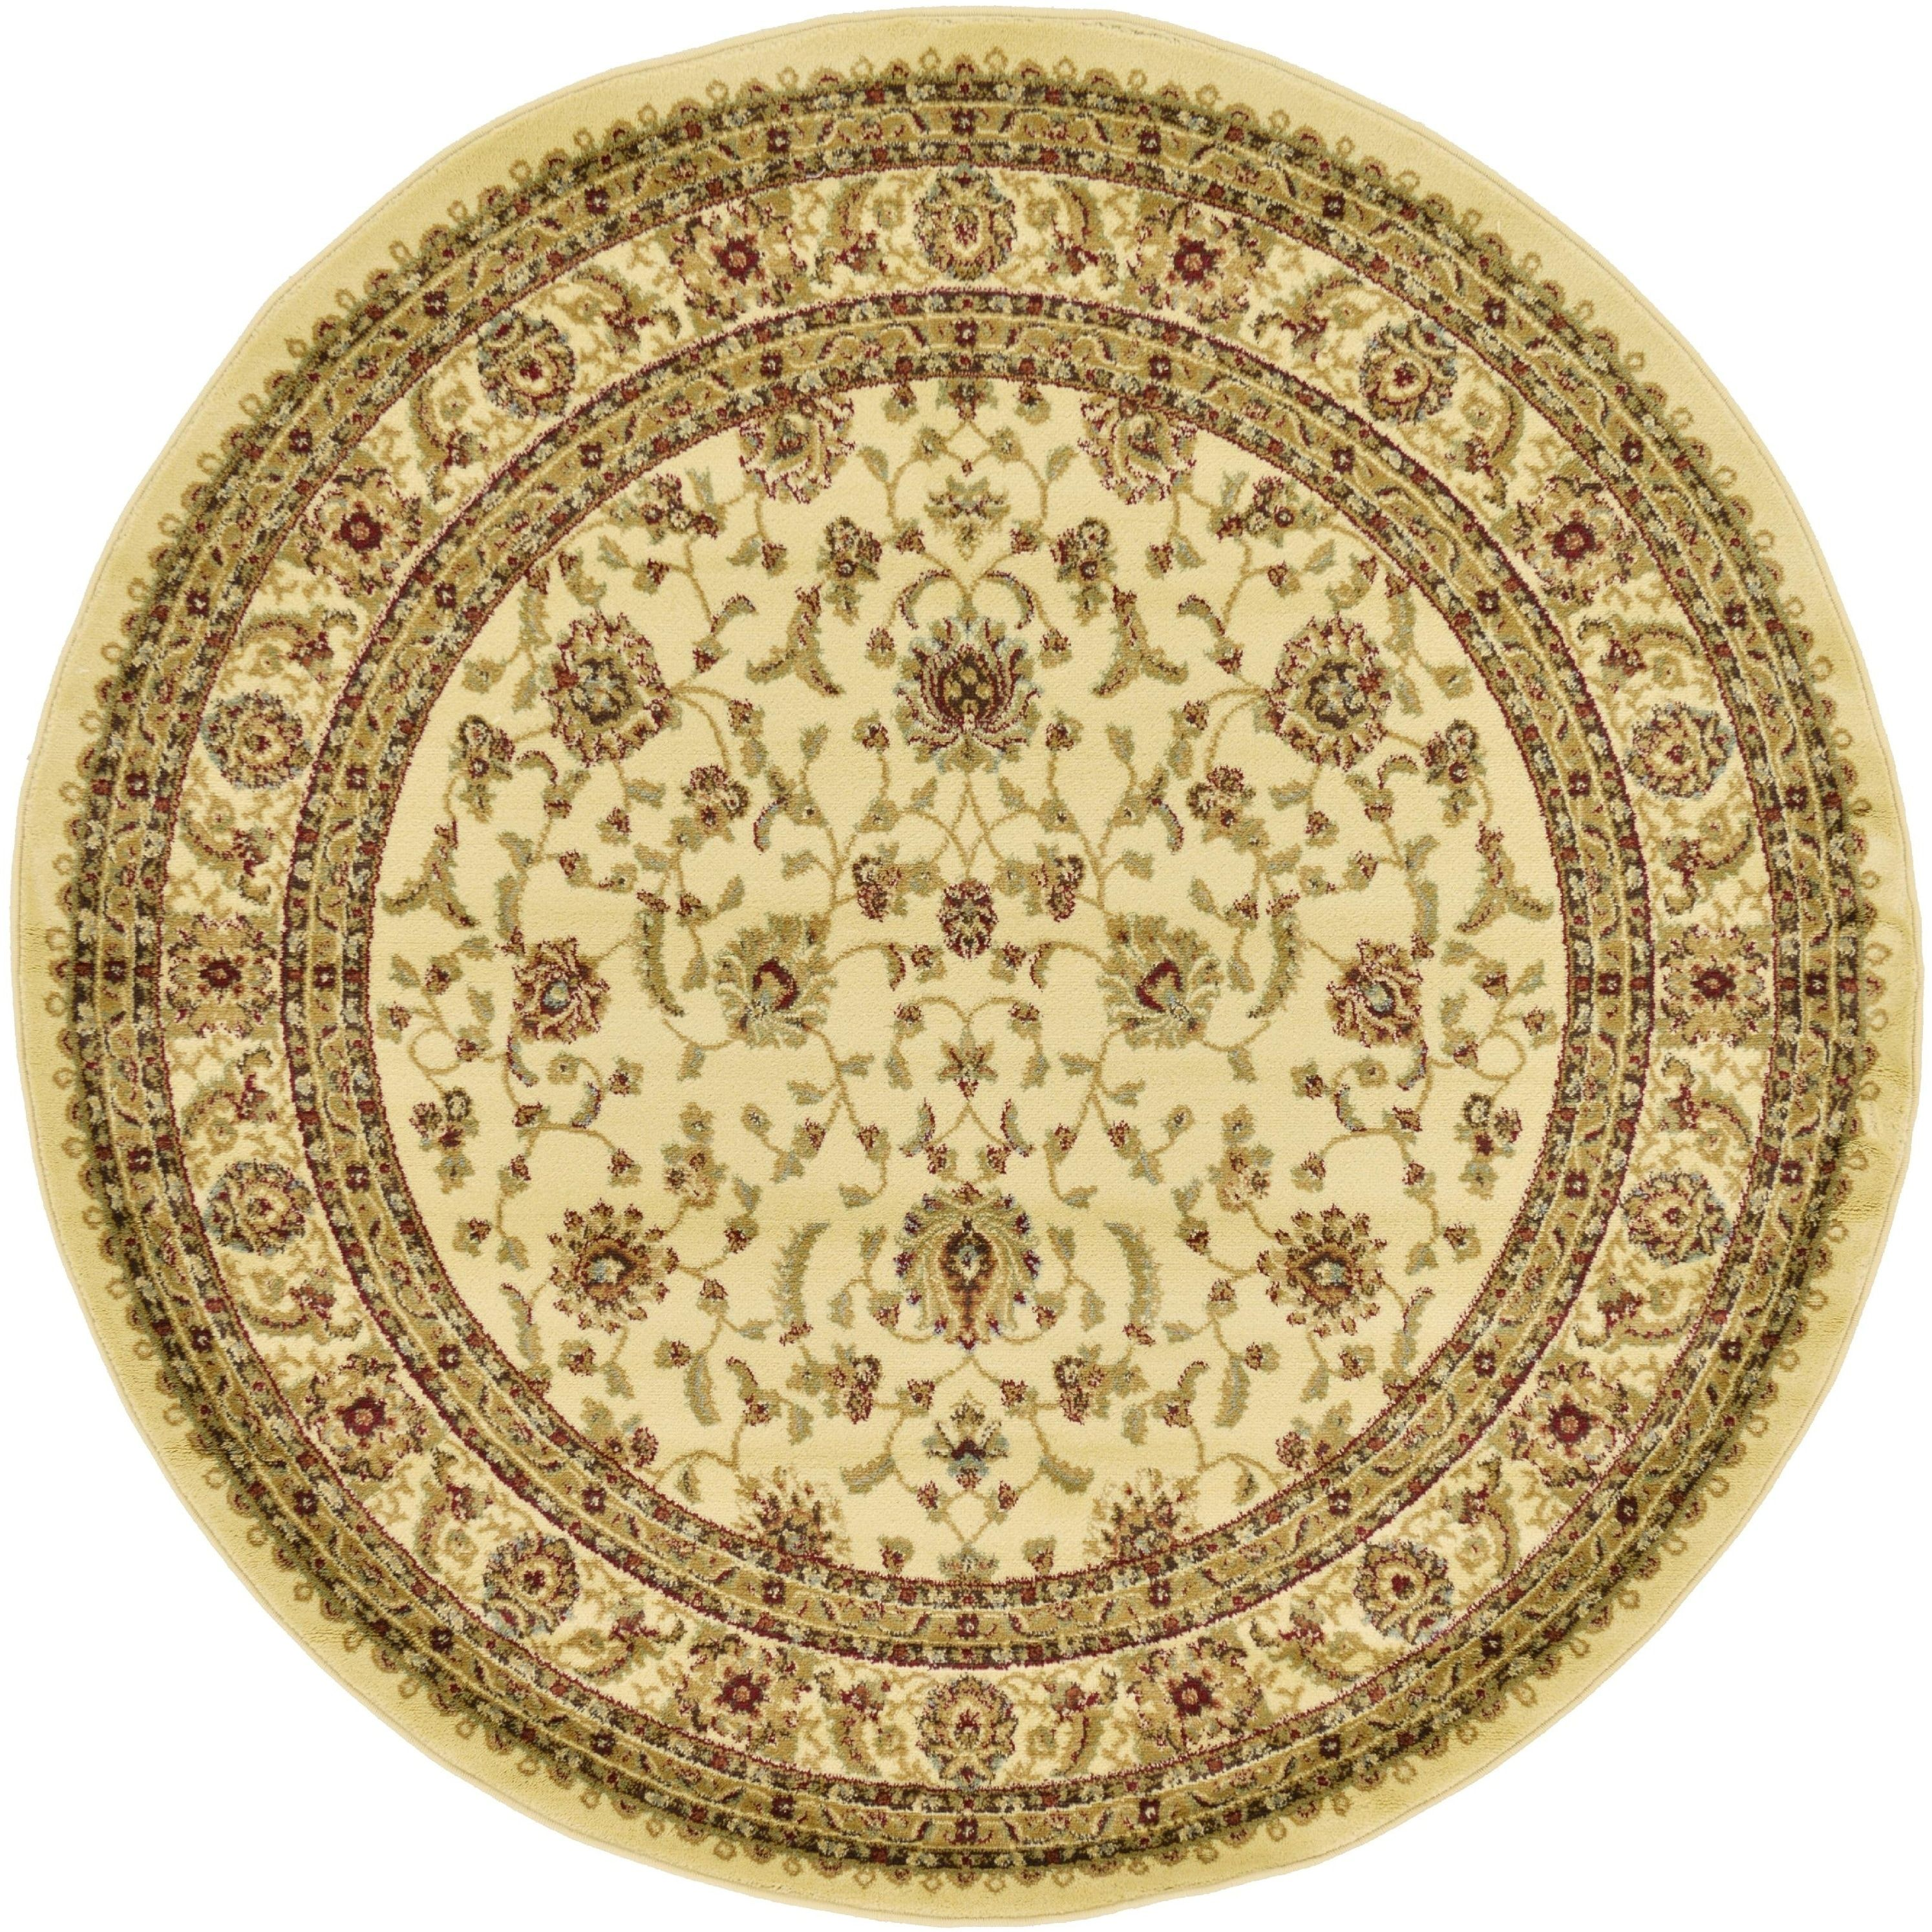 Unique Agra Fl Round Area Rug 6 Blue Size X Polypropylene Abstract